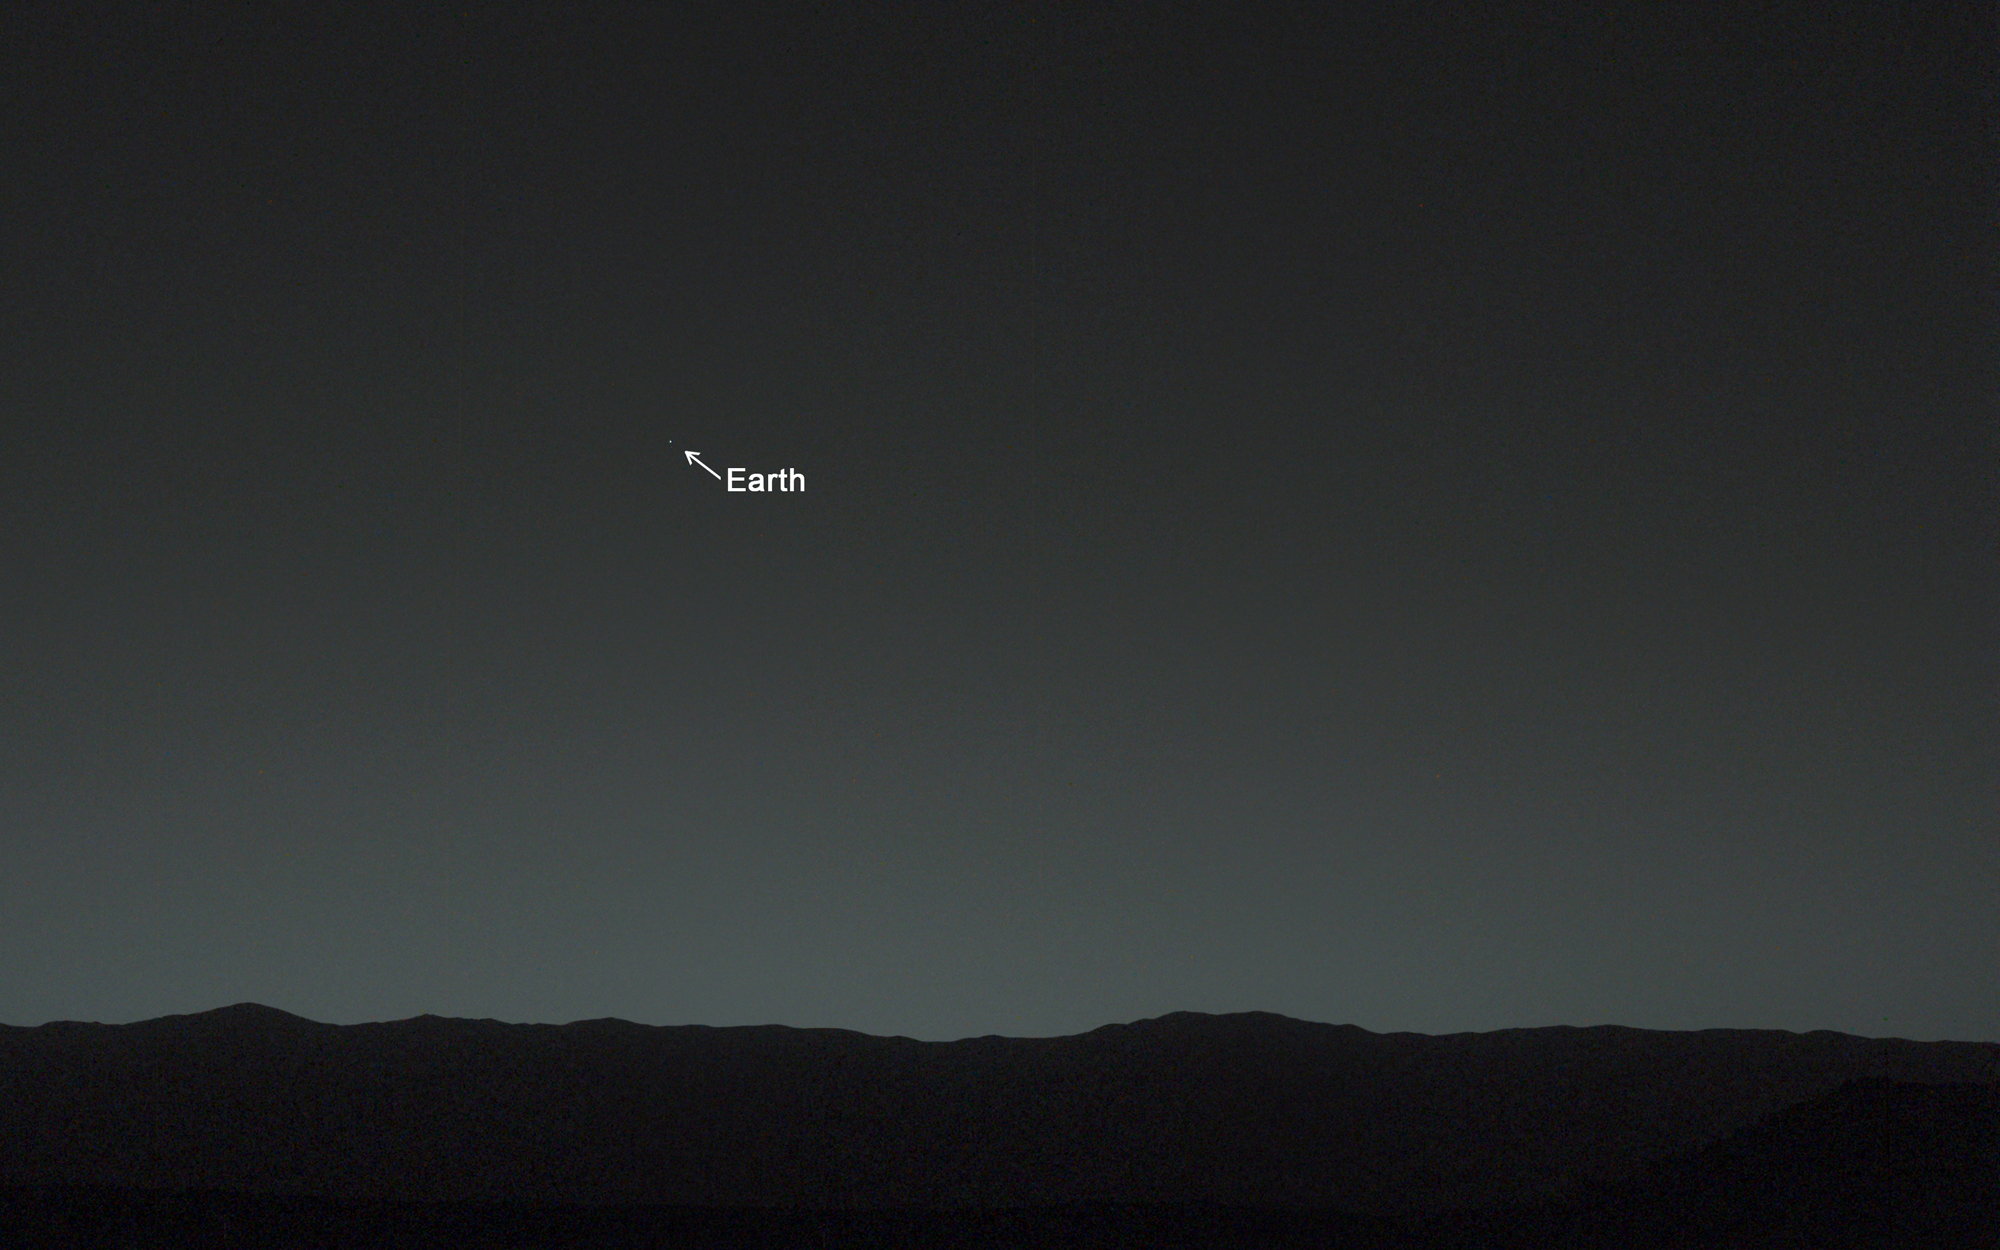 Curiosity Rover Sees Earth from Mars for 1st Time (Photos)